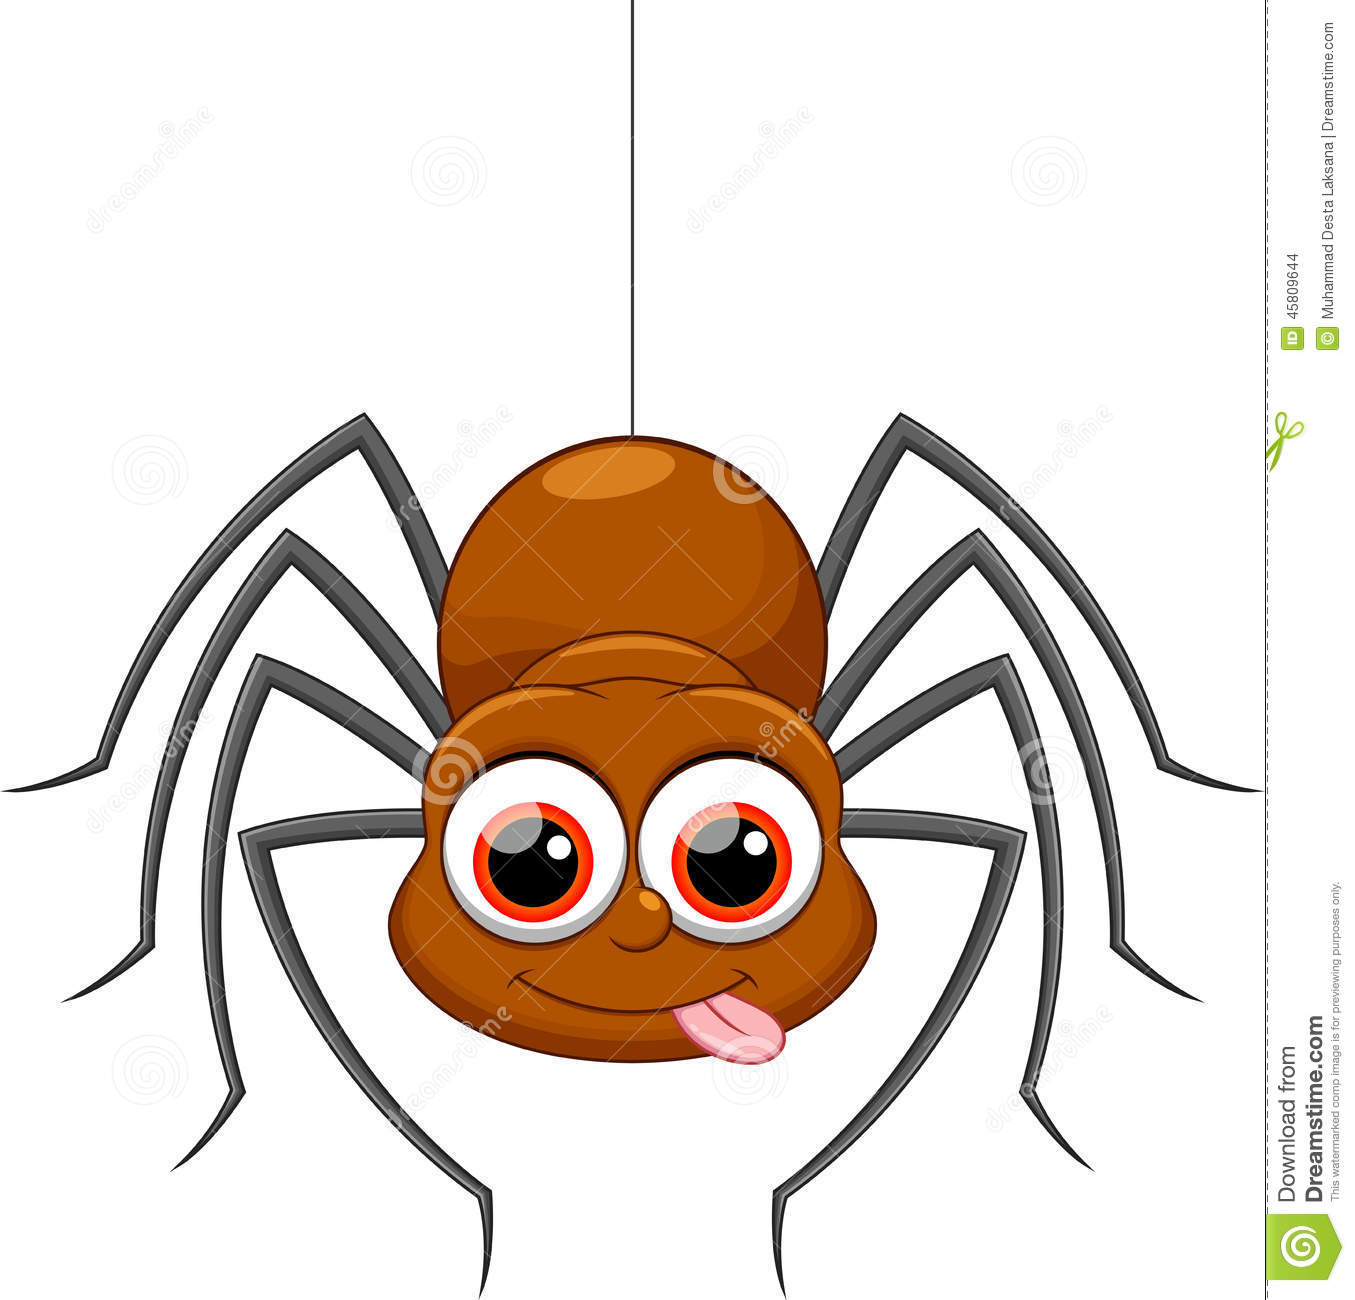 cute spider cartoon stock illustration image 45809644 ice hockey clipart black and white ice hockey rink clipart